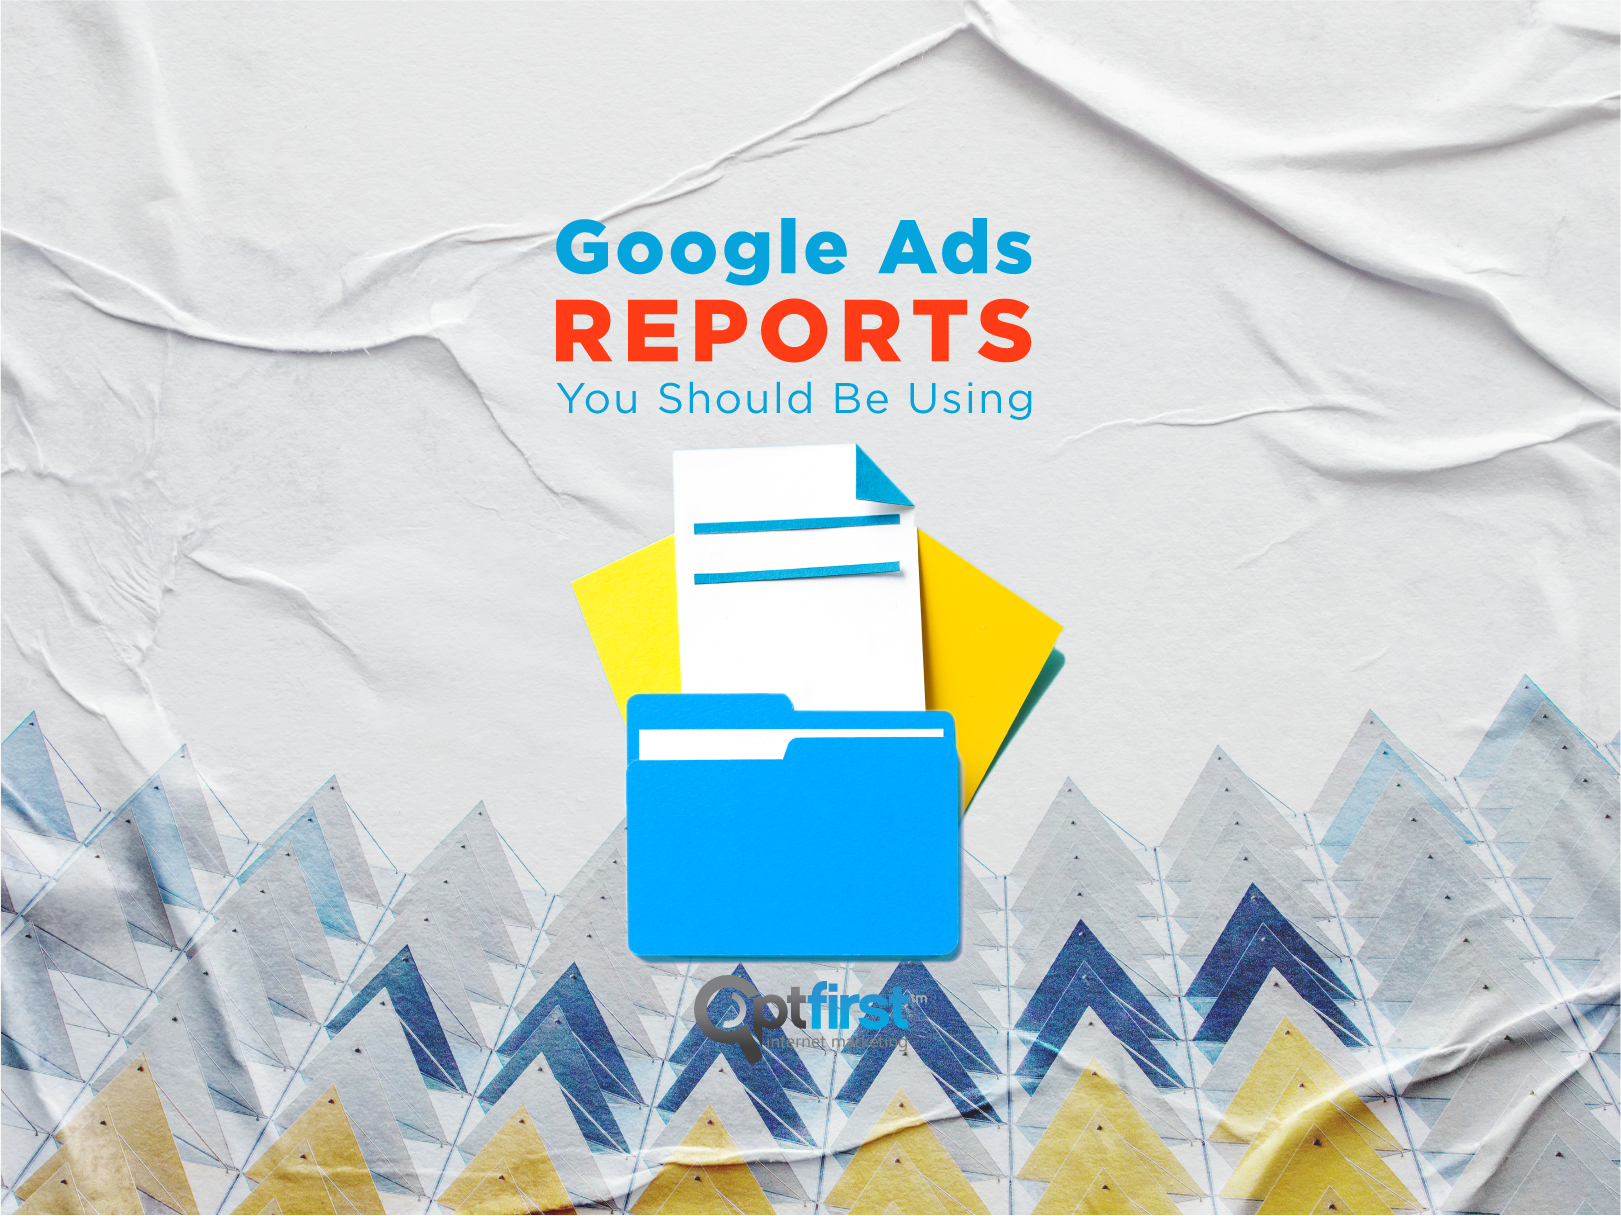 Google Ads Reports You Should Be Using